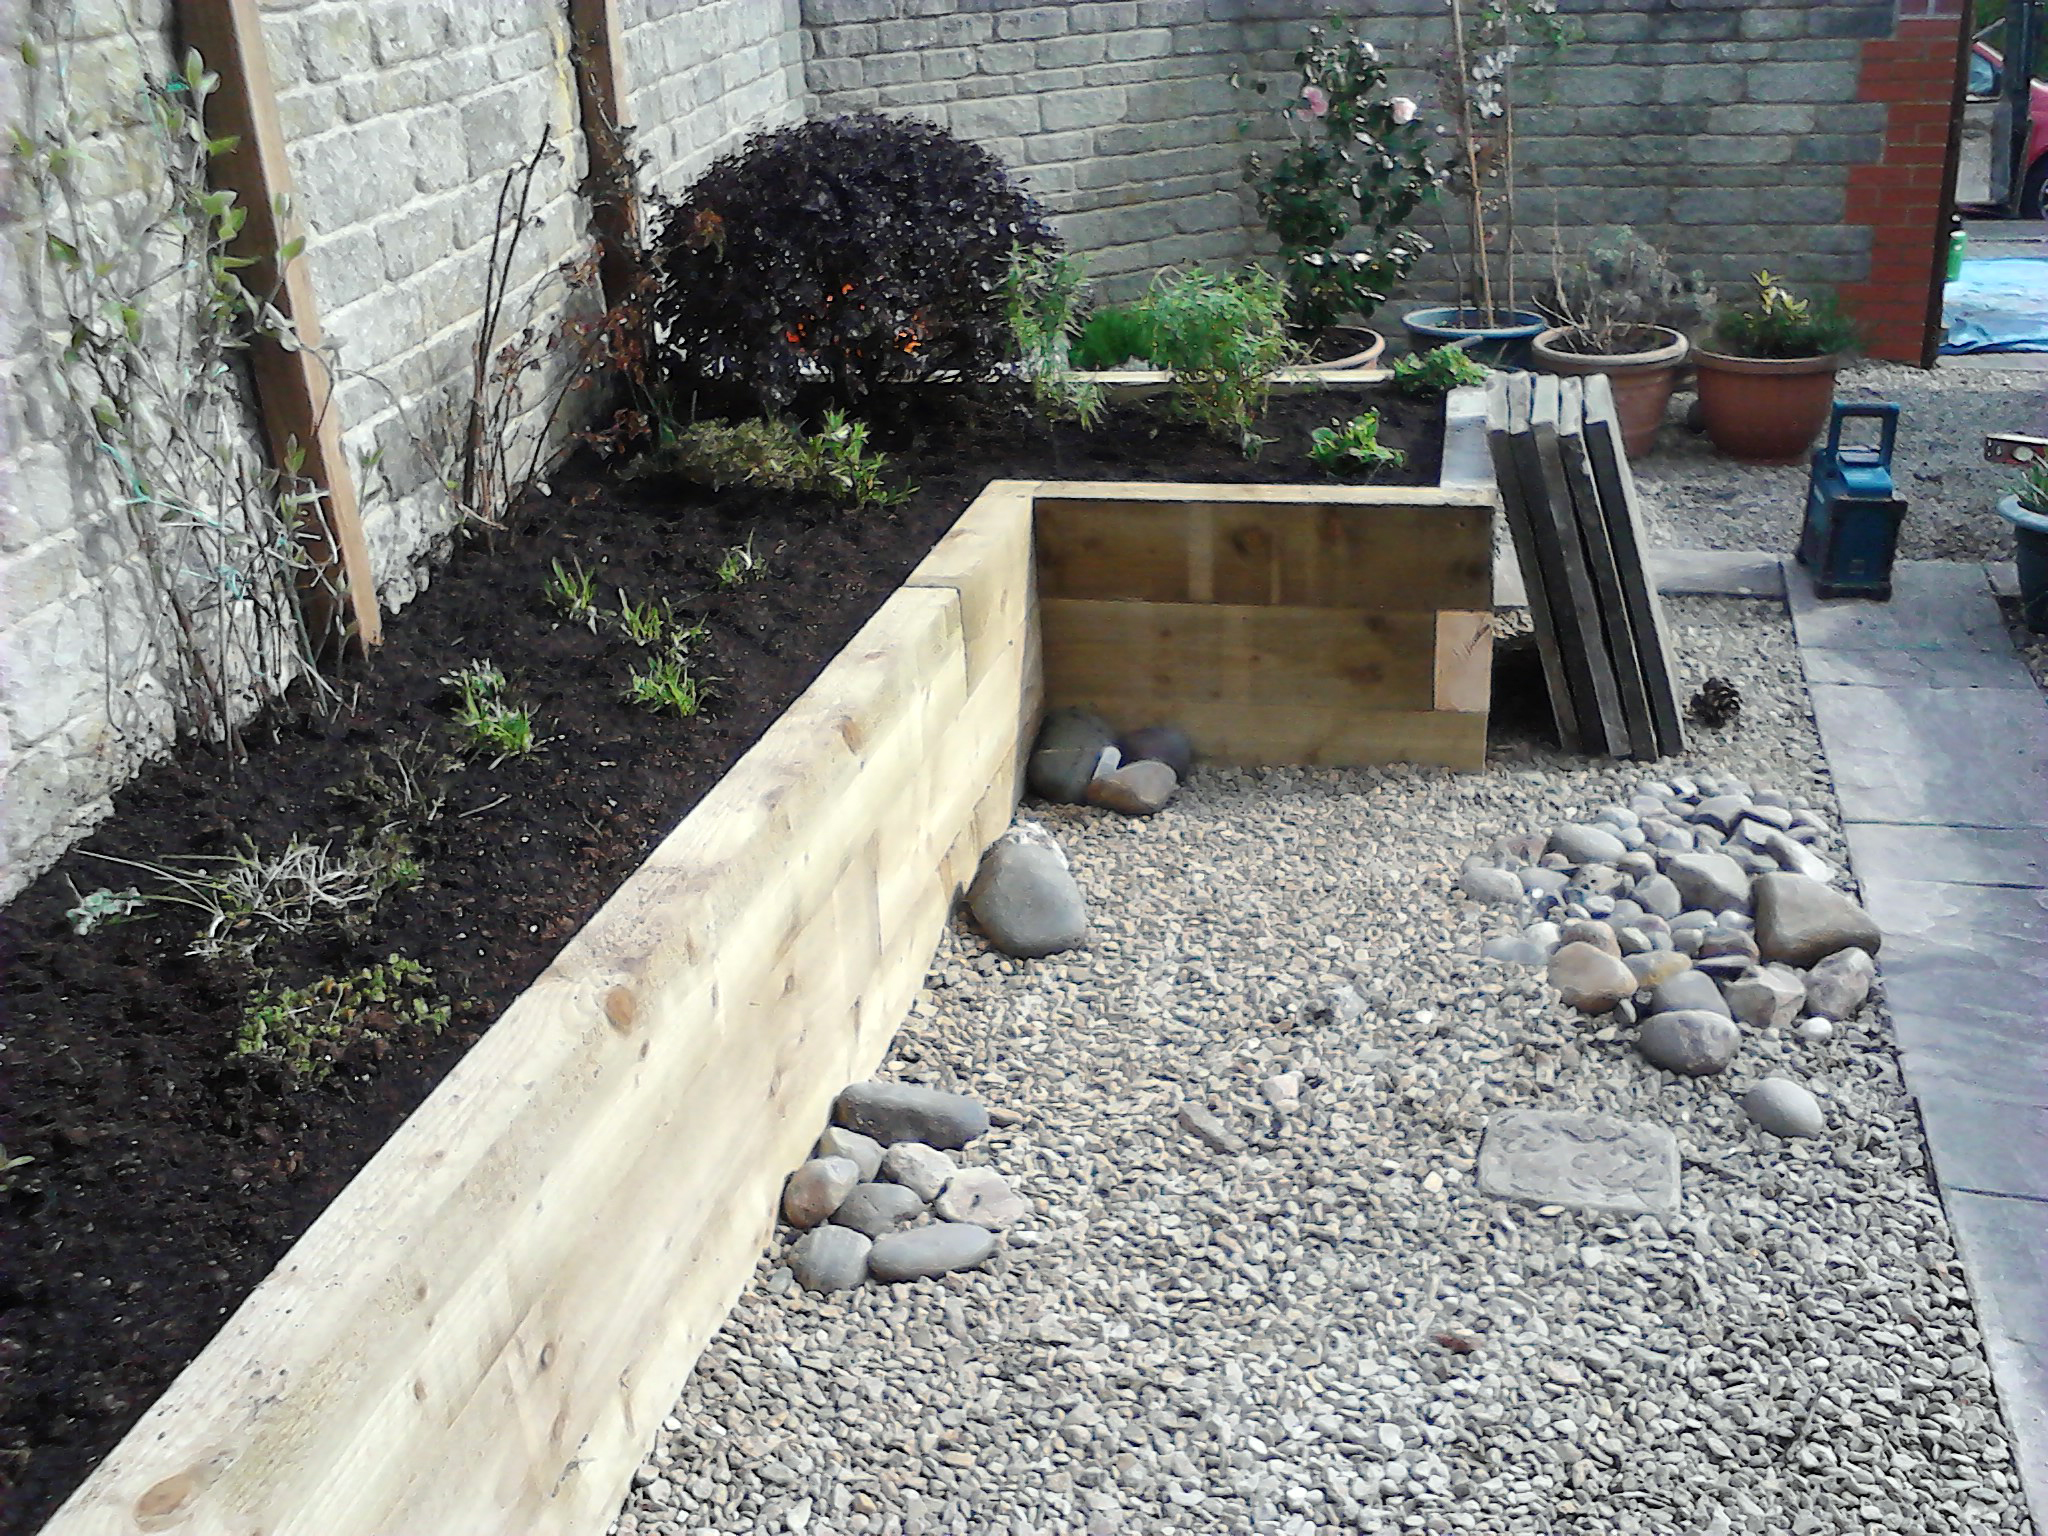 Railway sleepers as garden features j b lanscapes for Garden designs with railway sleepers